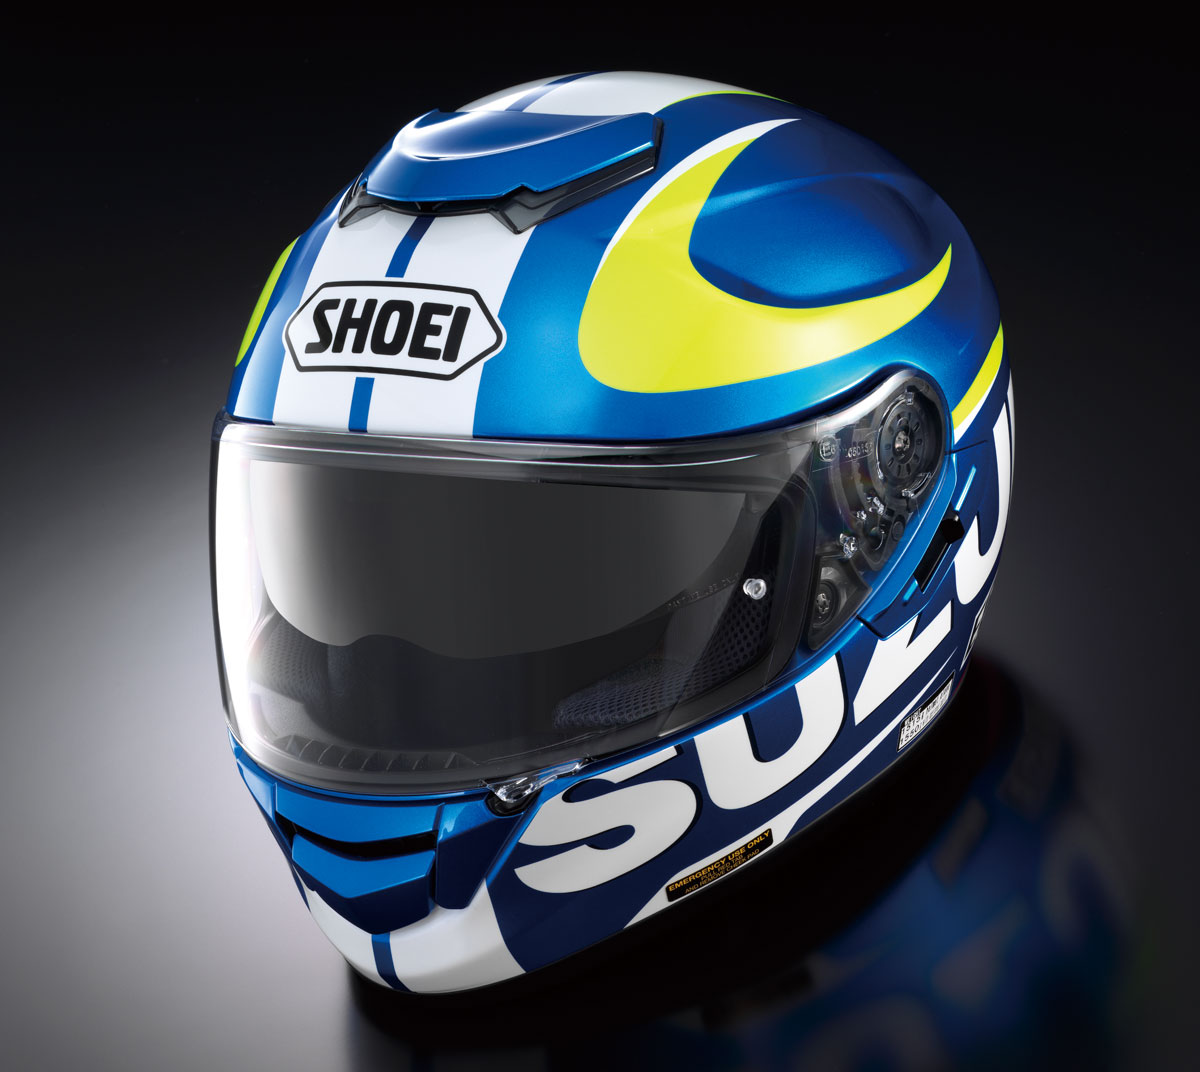 Product: Shoei GT-Air Suzuki MotoGP helmet - CycleOnline.com.au